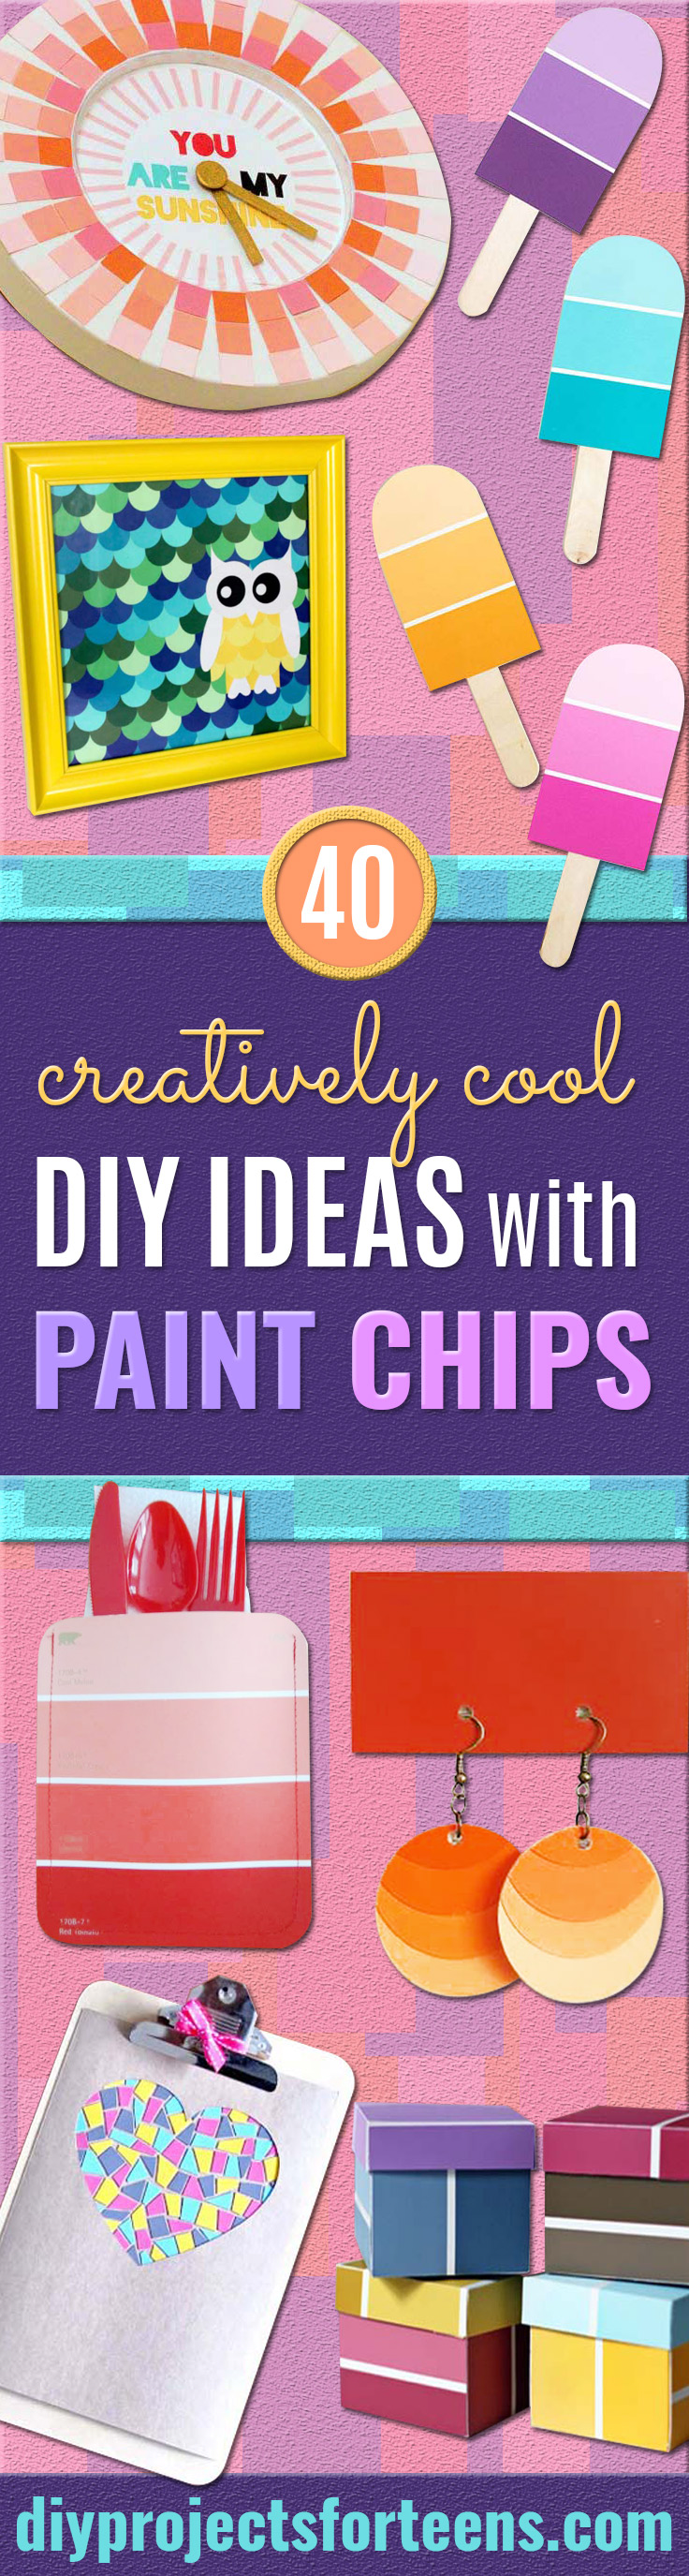 Creatively Cool Diy Crafts With Paint Chips